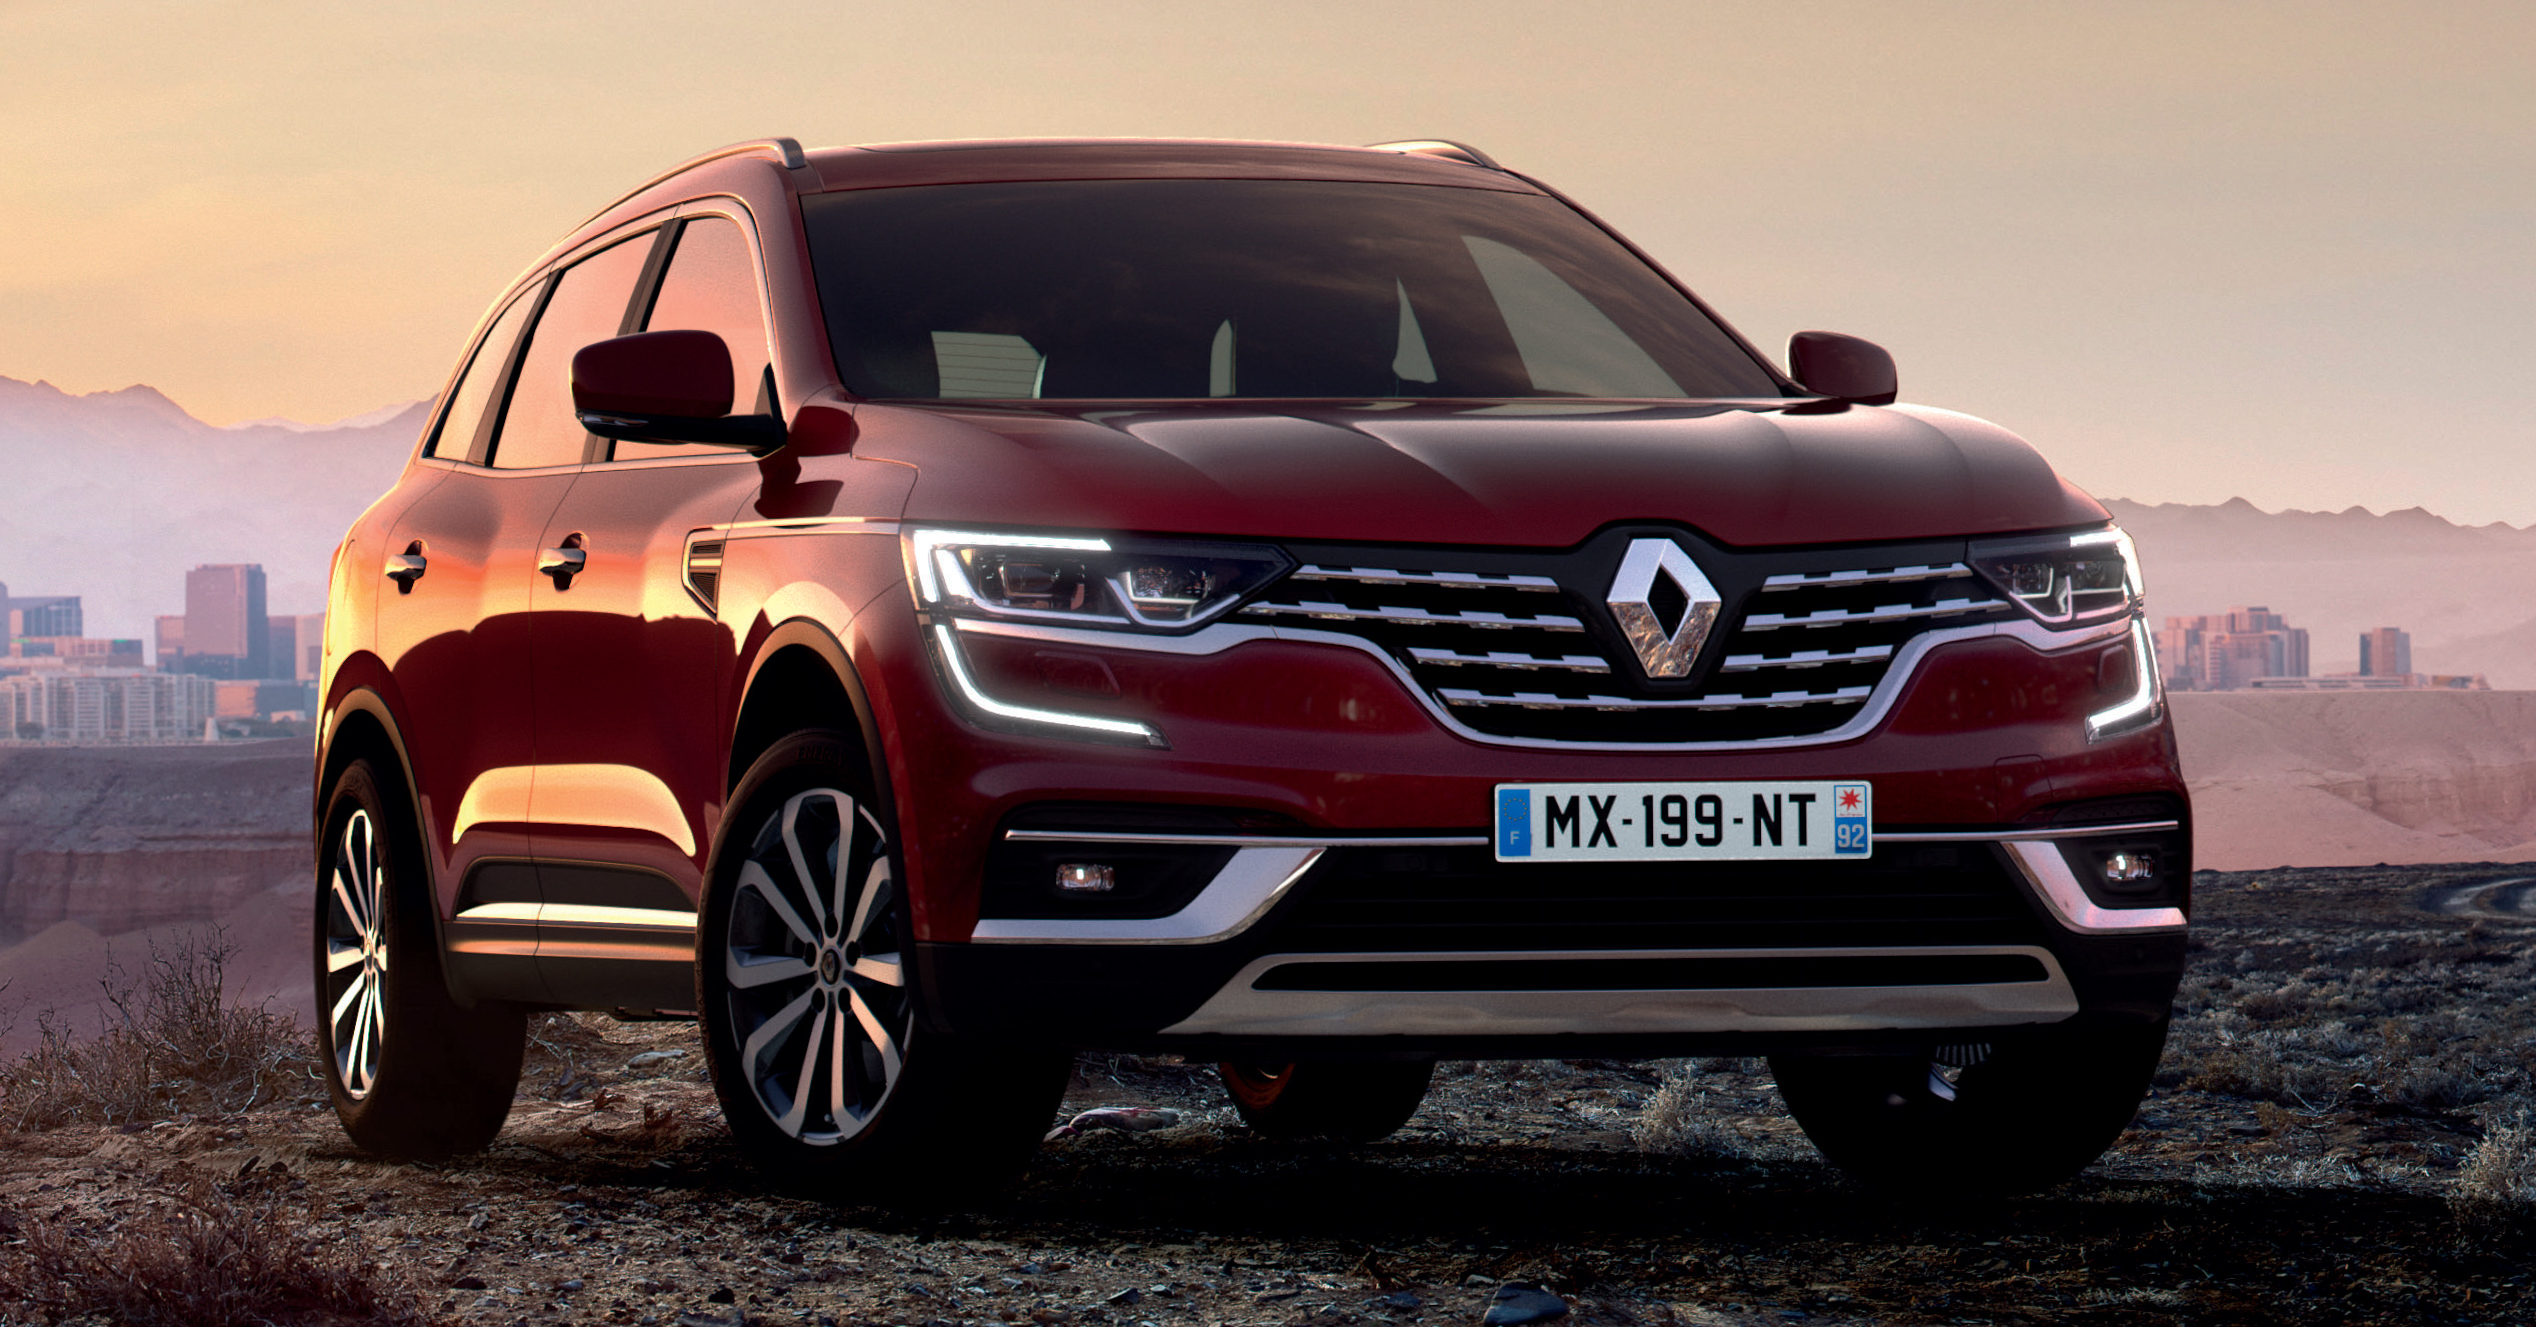 2020 Renault Koleos facelift - new look and engines